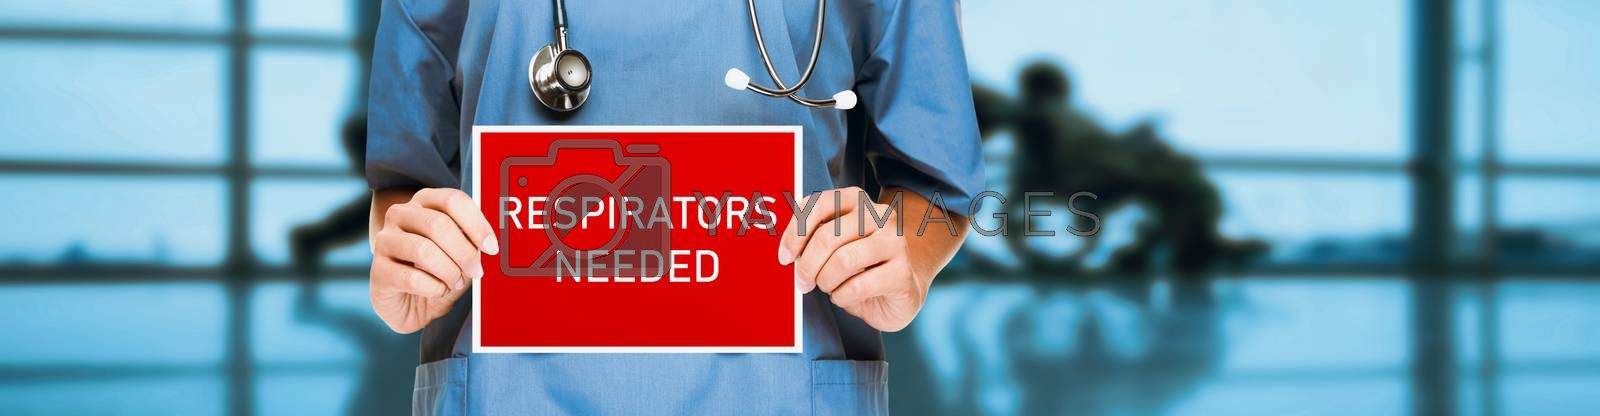 COVID-19 respirators masks needed in hospital for medical workers urgency. doctor or nurse showing sign asking for help holding red billboard white text. Panoramic corona virus sign banner with title by Maridav